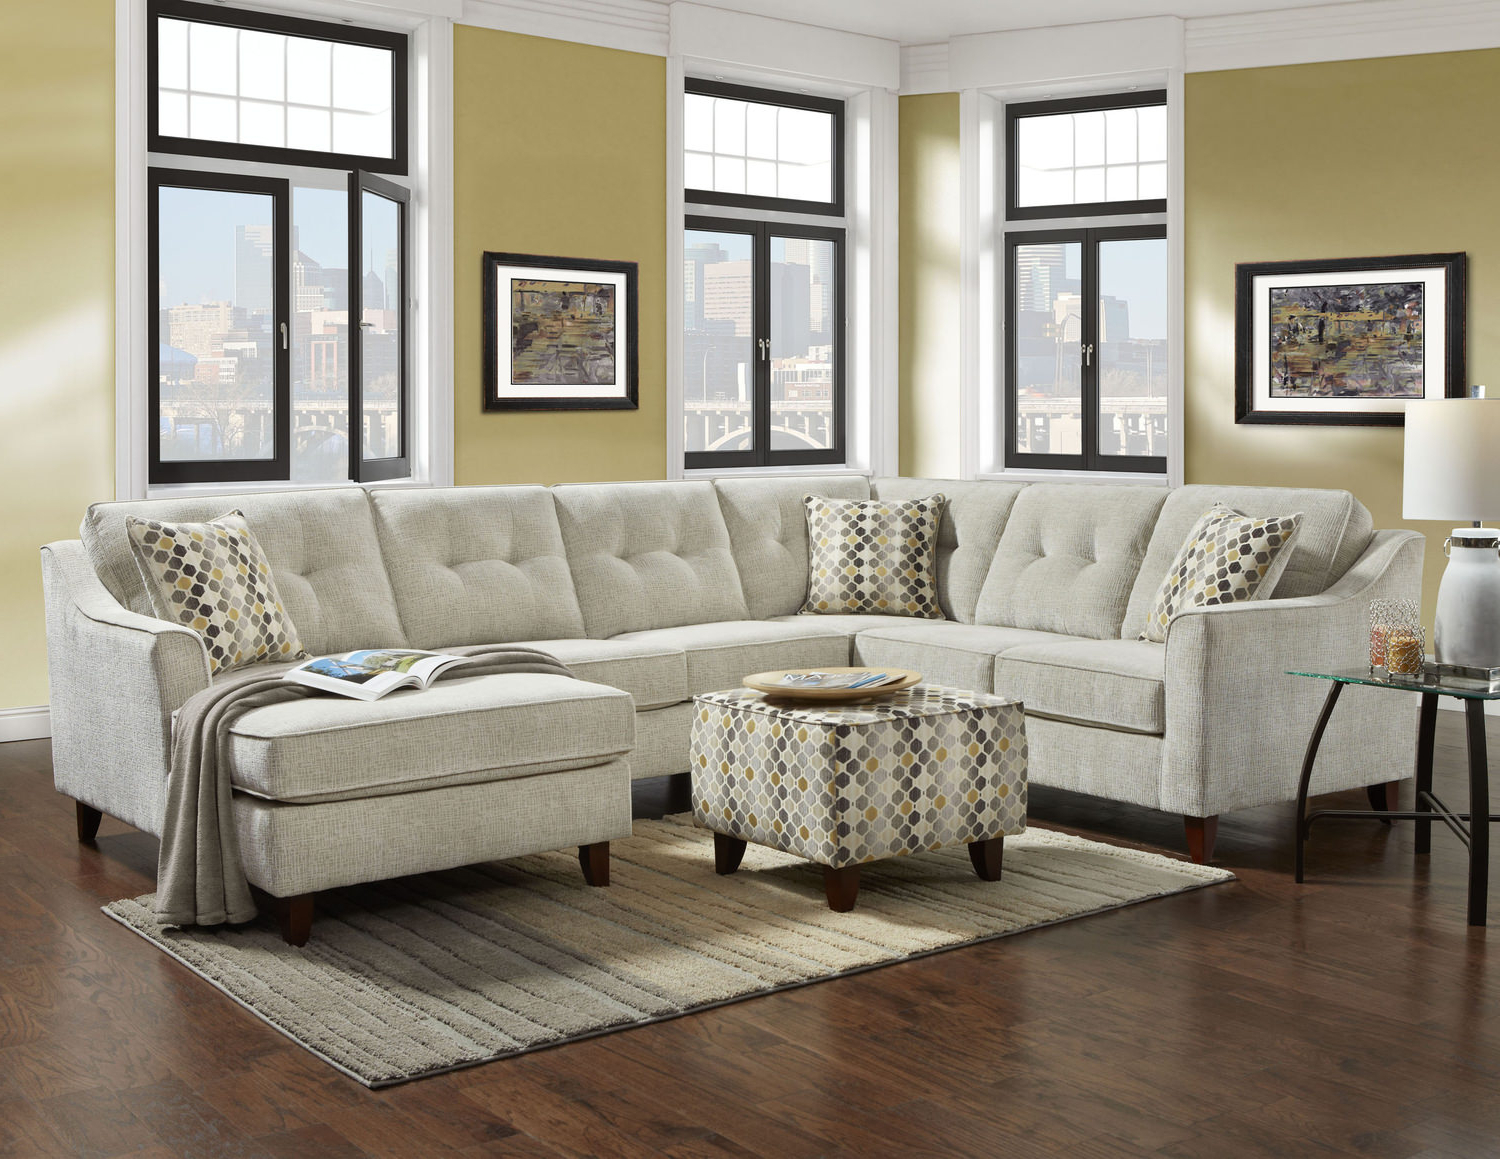 Malbry Point 3 Piece Sectionals With Laf Chaise In Most Up To Date Colby 3 Piece Sectional Dock86 – Locsbyhelenelorasa (View 11 of 20)